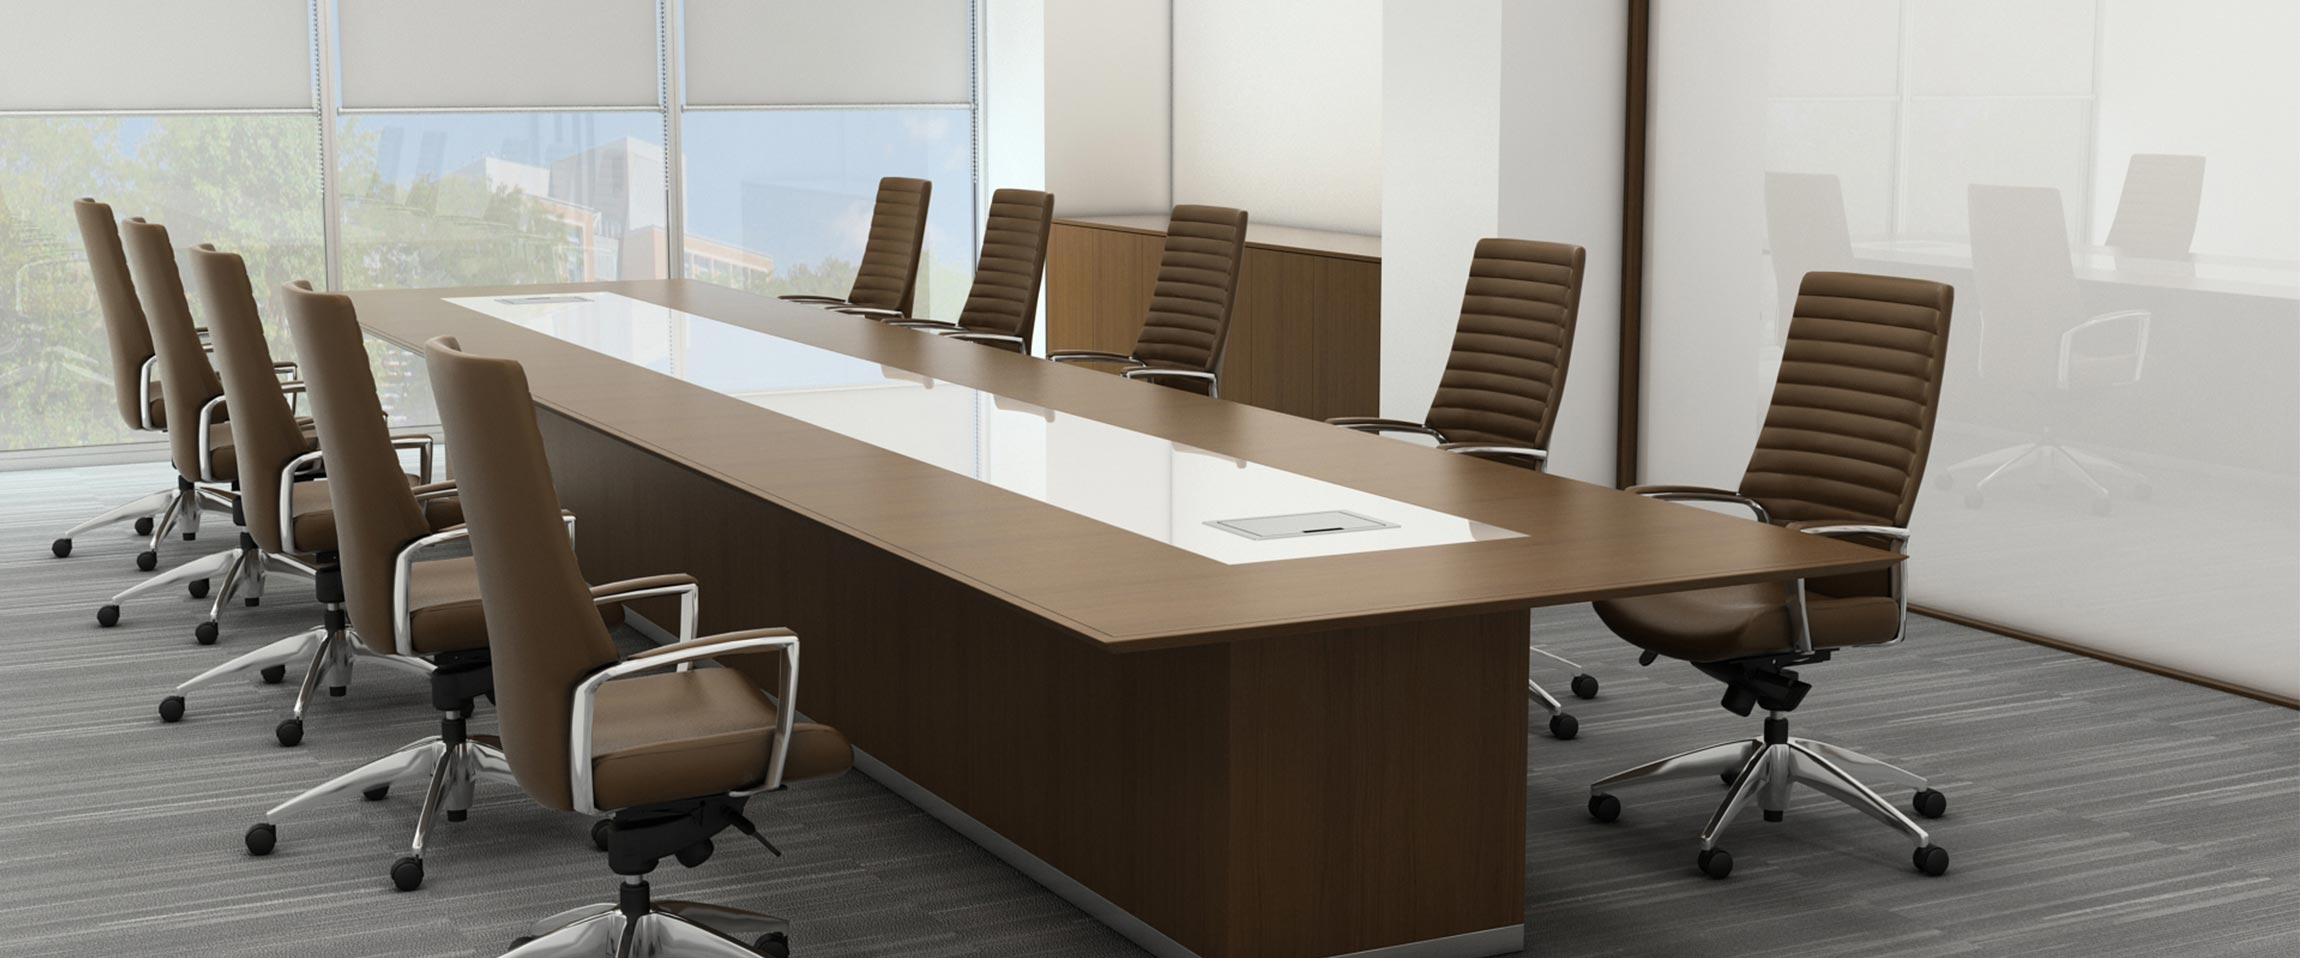 conference-table-brownchairs-958h